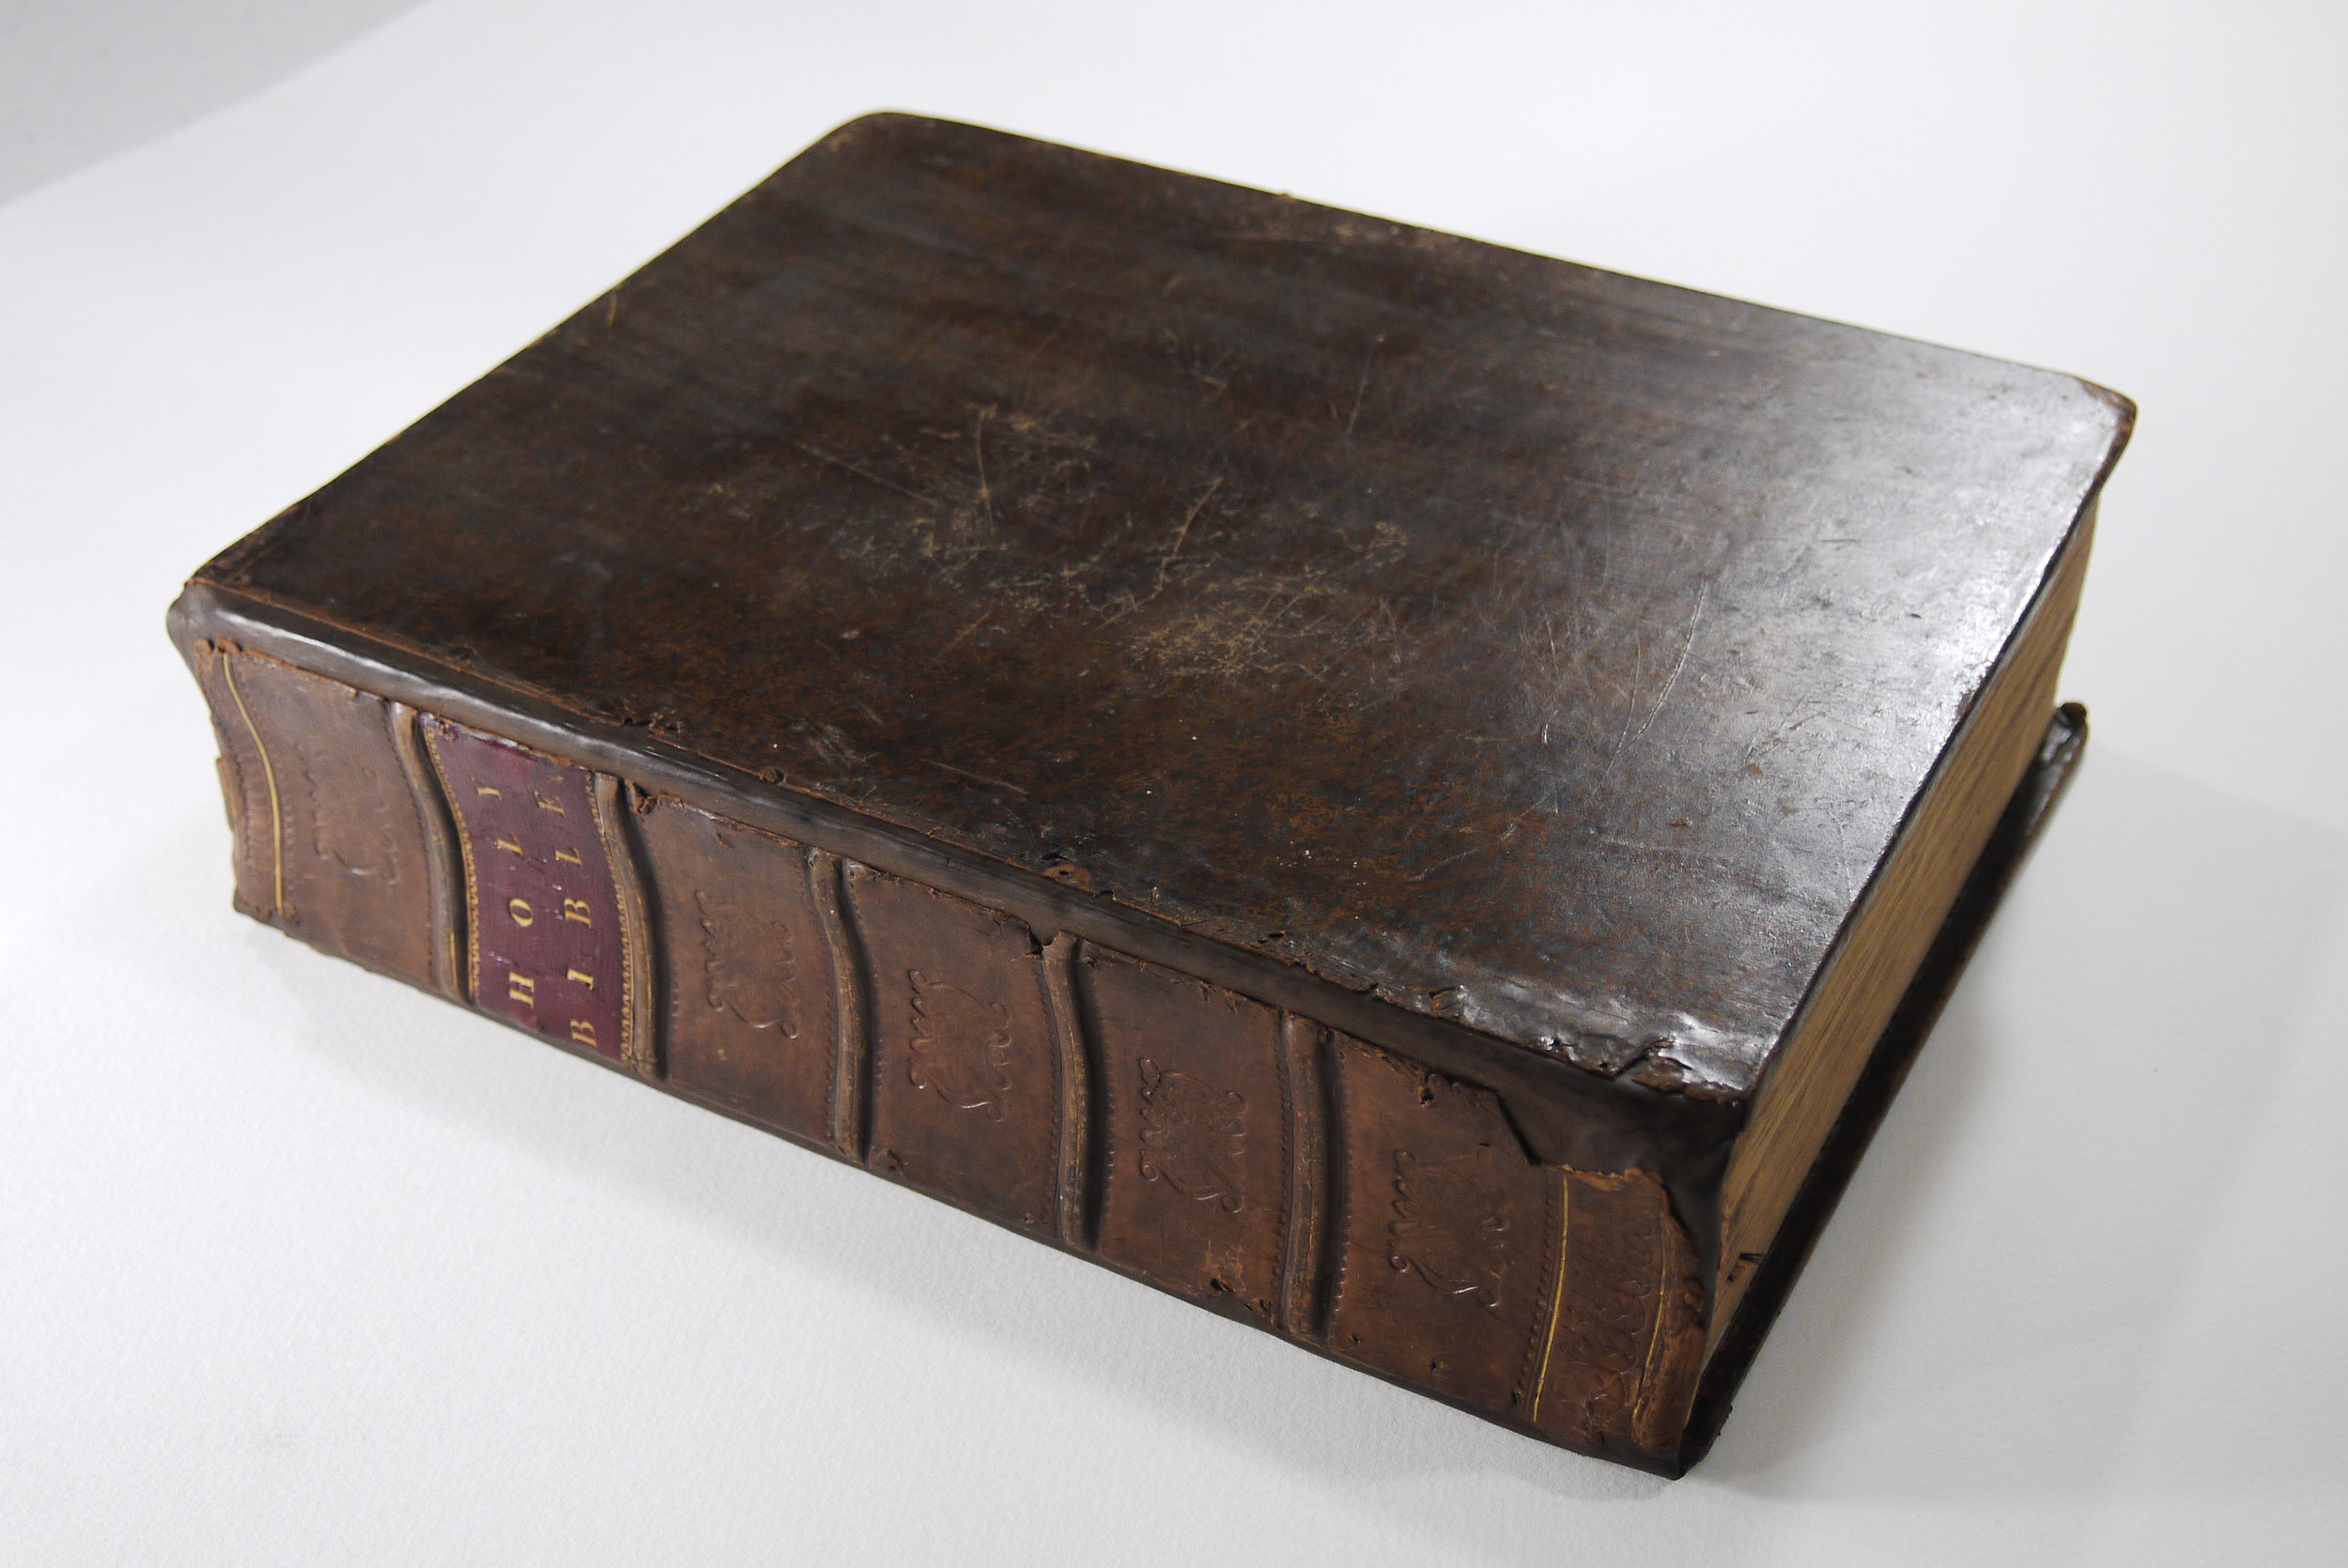 1817 Holy Bible after conservation treatment.